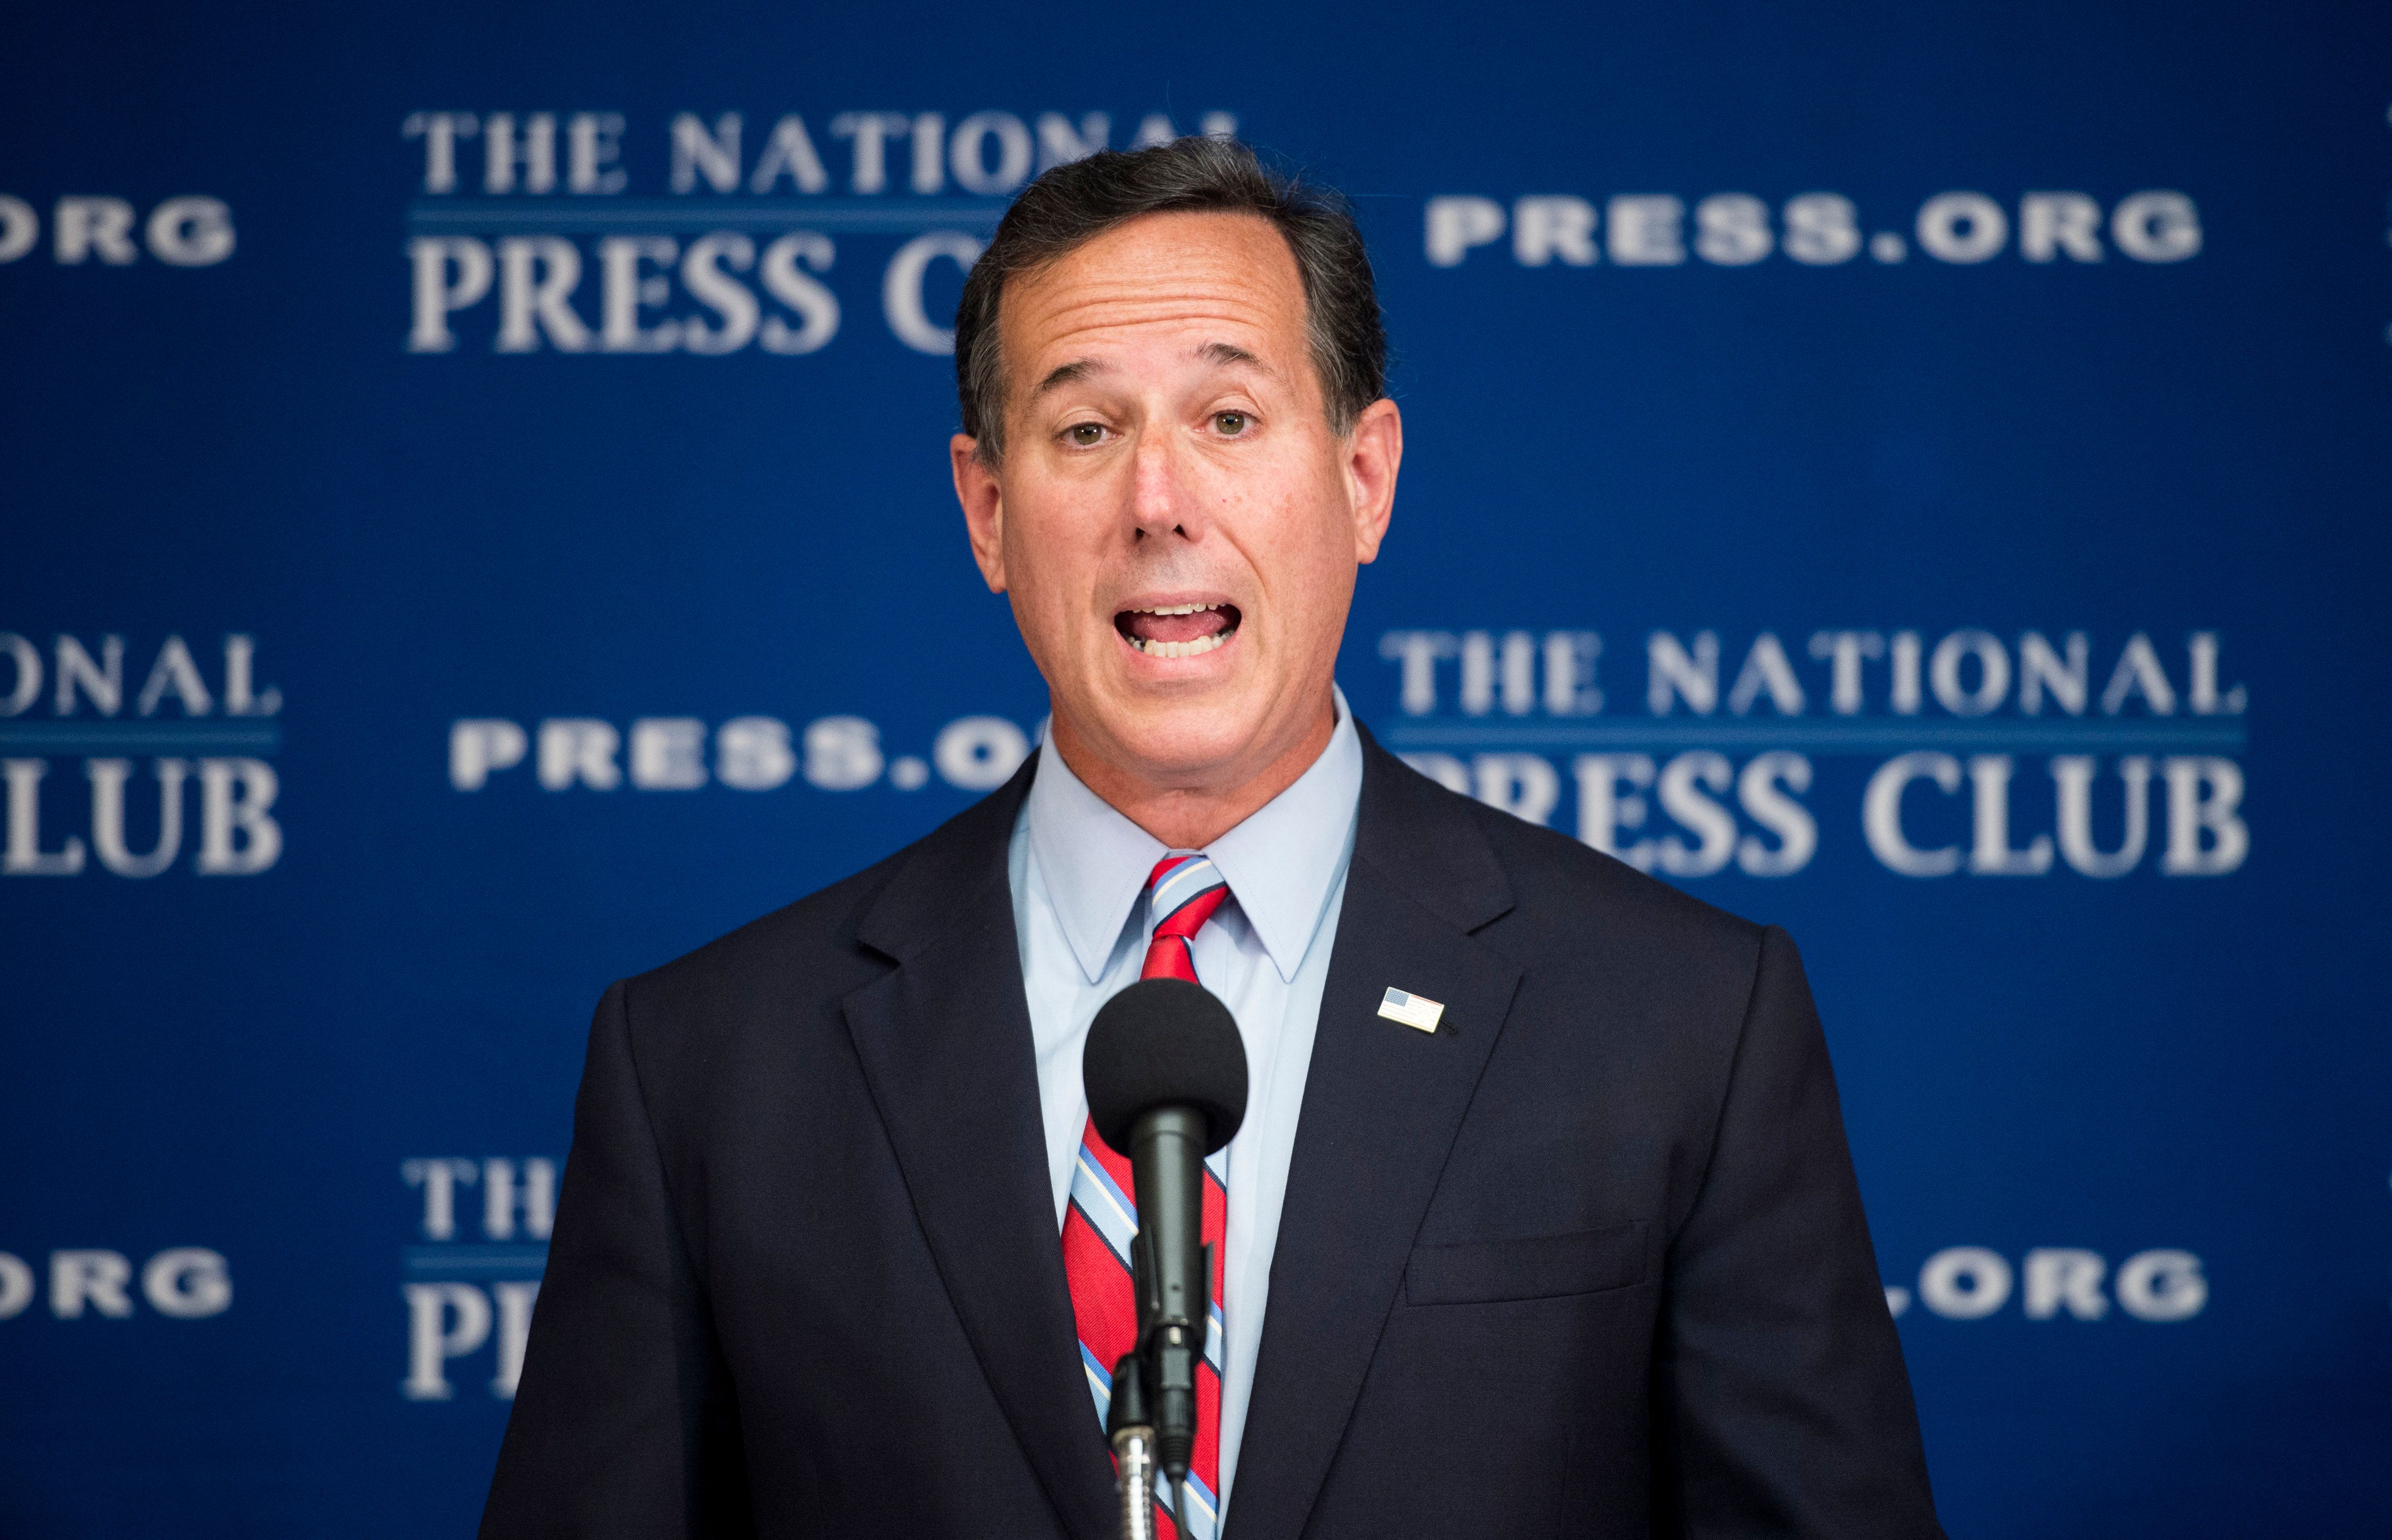 UNITED STATES - AUGUST 20: GOP Presidential candidate and former Sen. Rick Santorum, R-Pa., delivers a speech on his immigration policy at the National Press Club in Washington on Thursday, Aug. 20, 2015. (Photo By Bill Clark/CQ Roll Call)